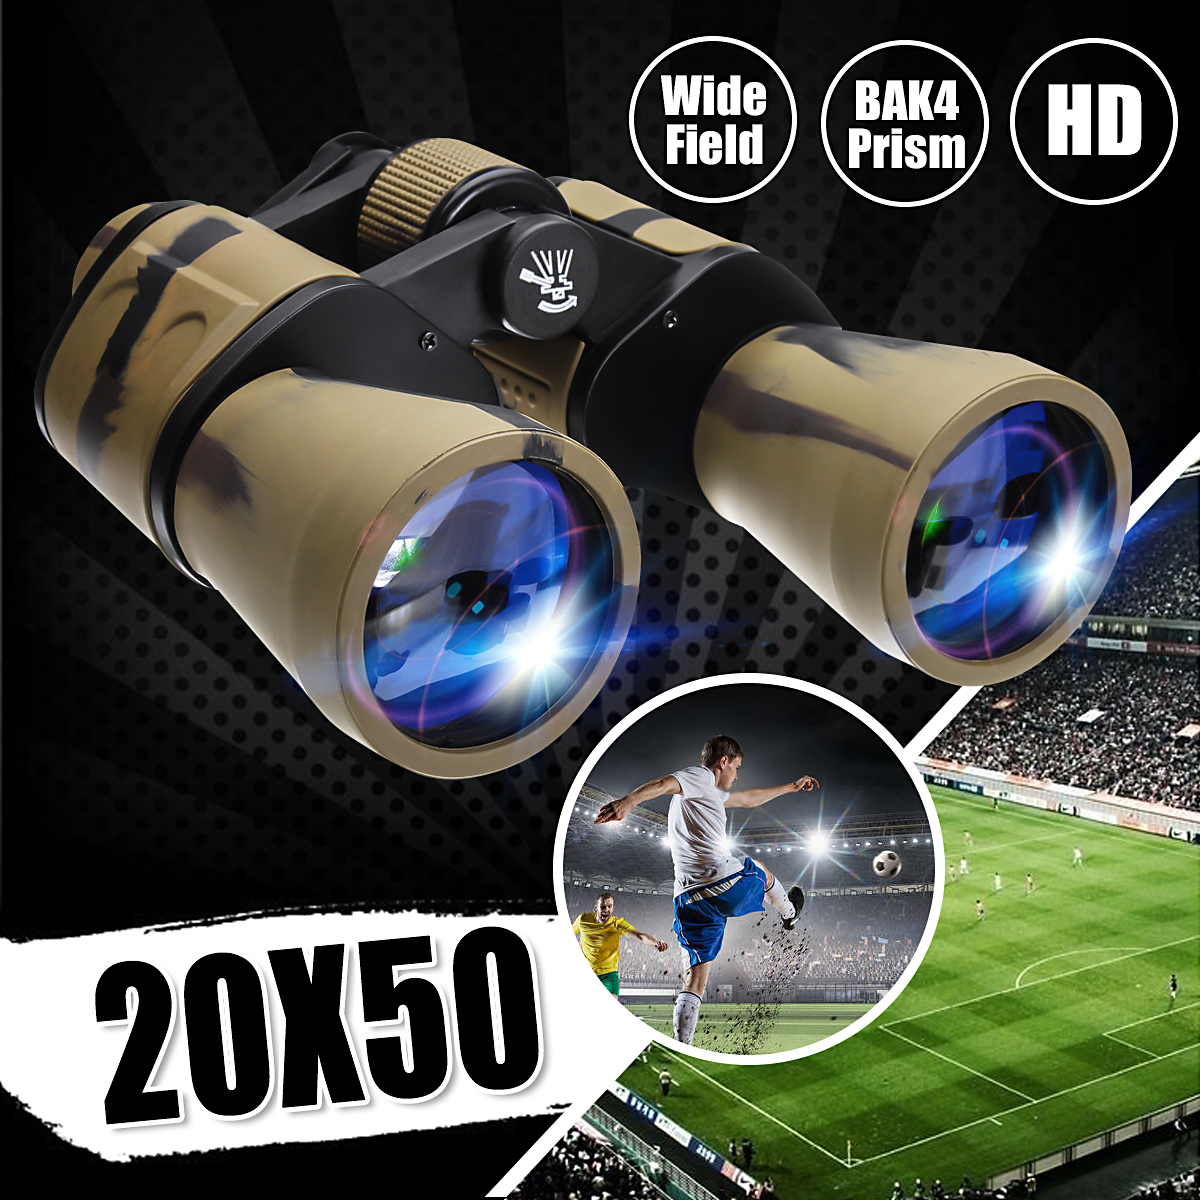 20X50 Magnification Binoculars Telescope Waterproof Portable Outdoor Low Light Vision Folding Telescope Bag for Sightseeing, Camping, Birdwatching, Hunting Kid Toy Christmas Gift